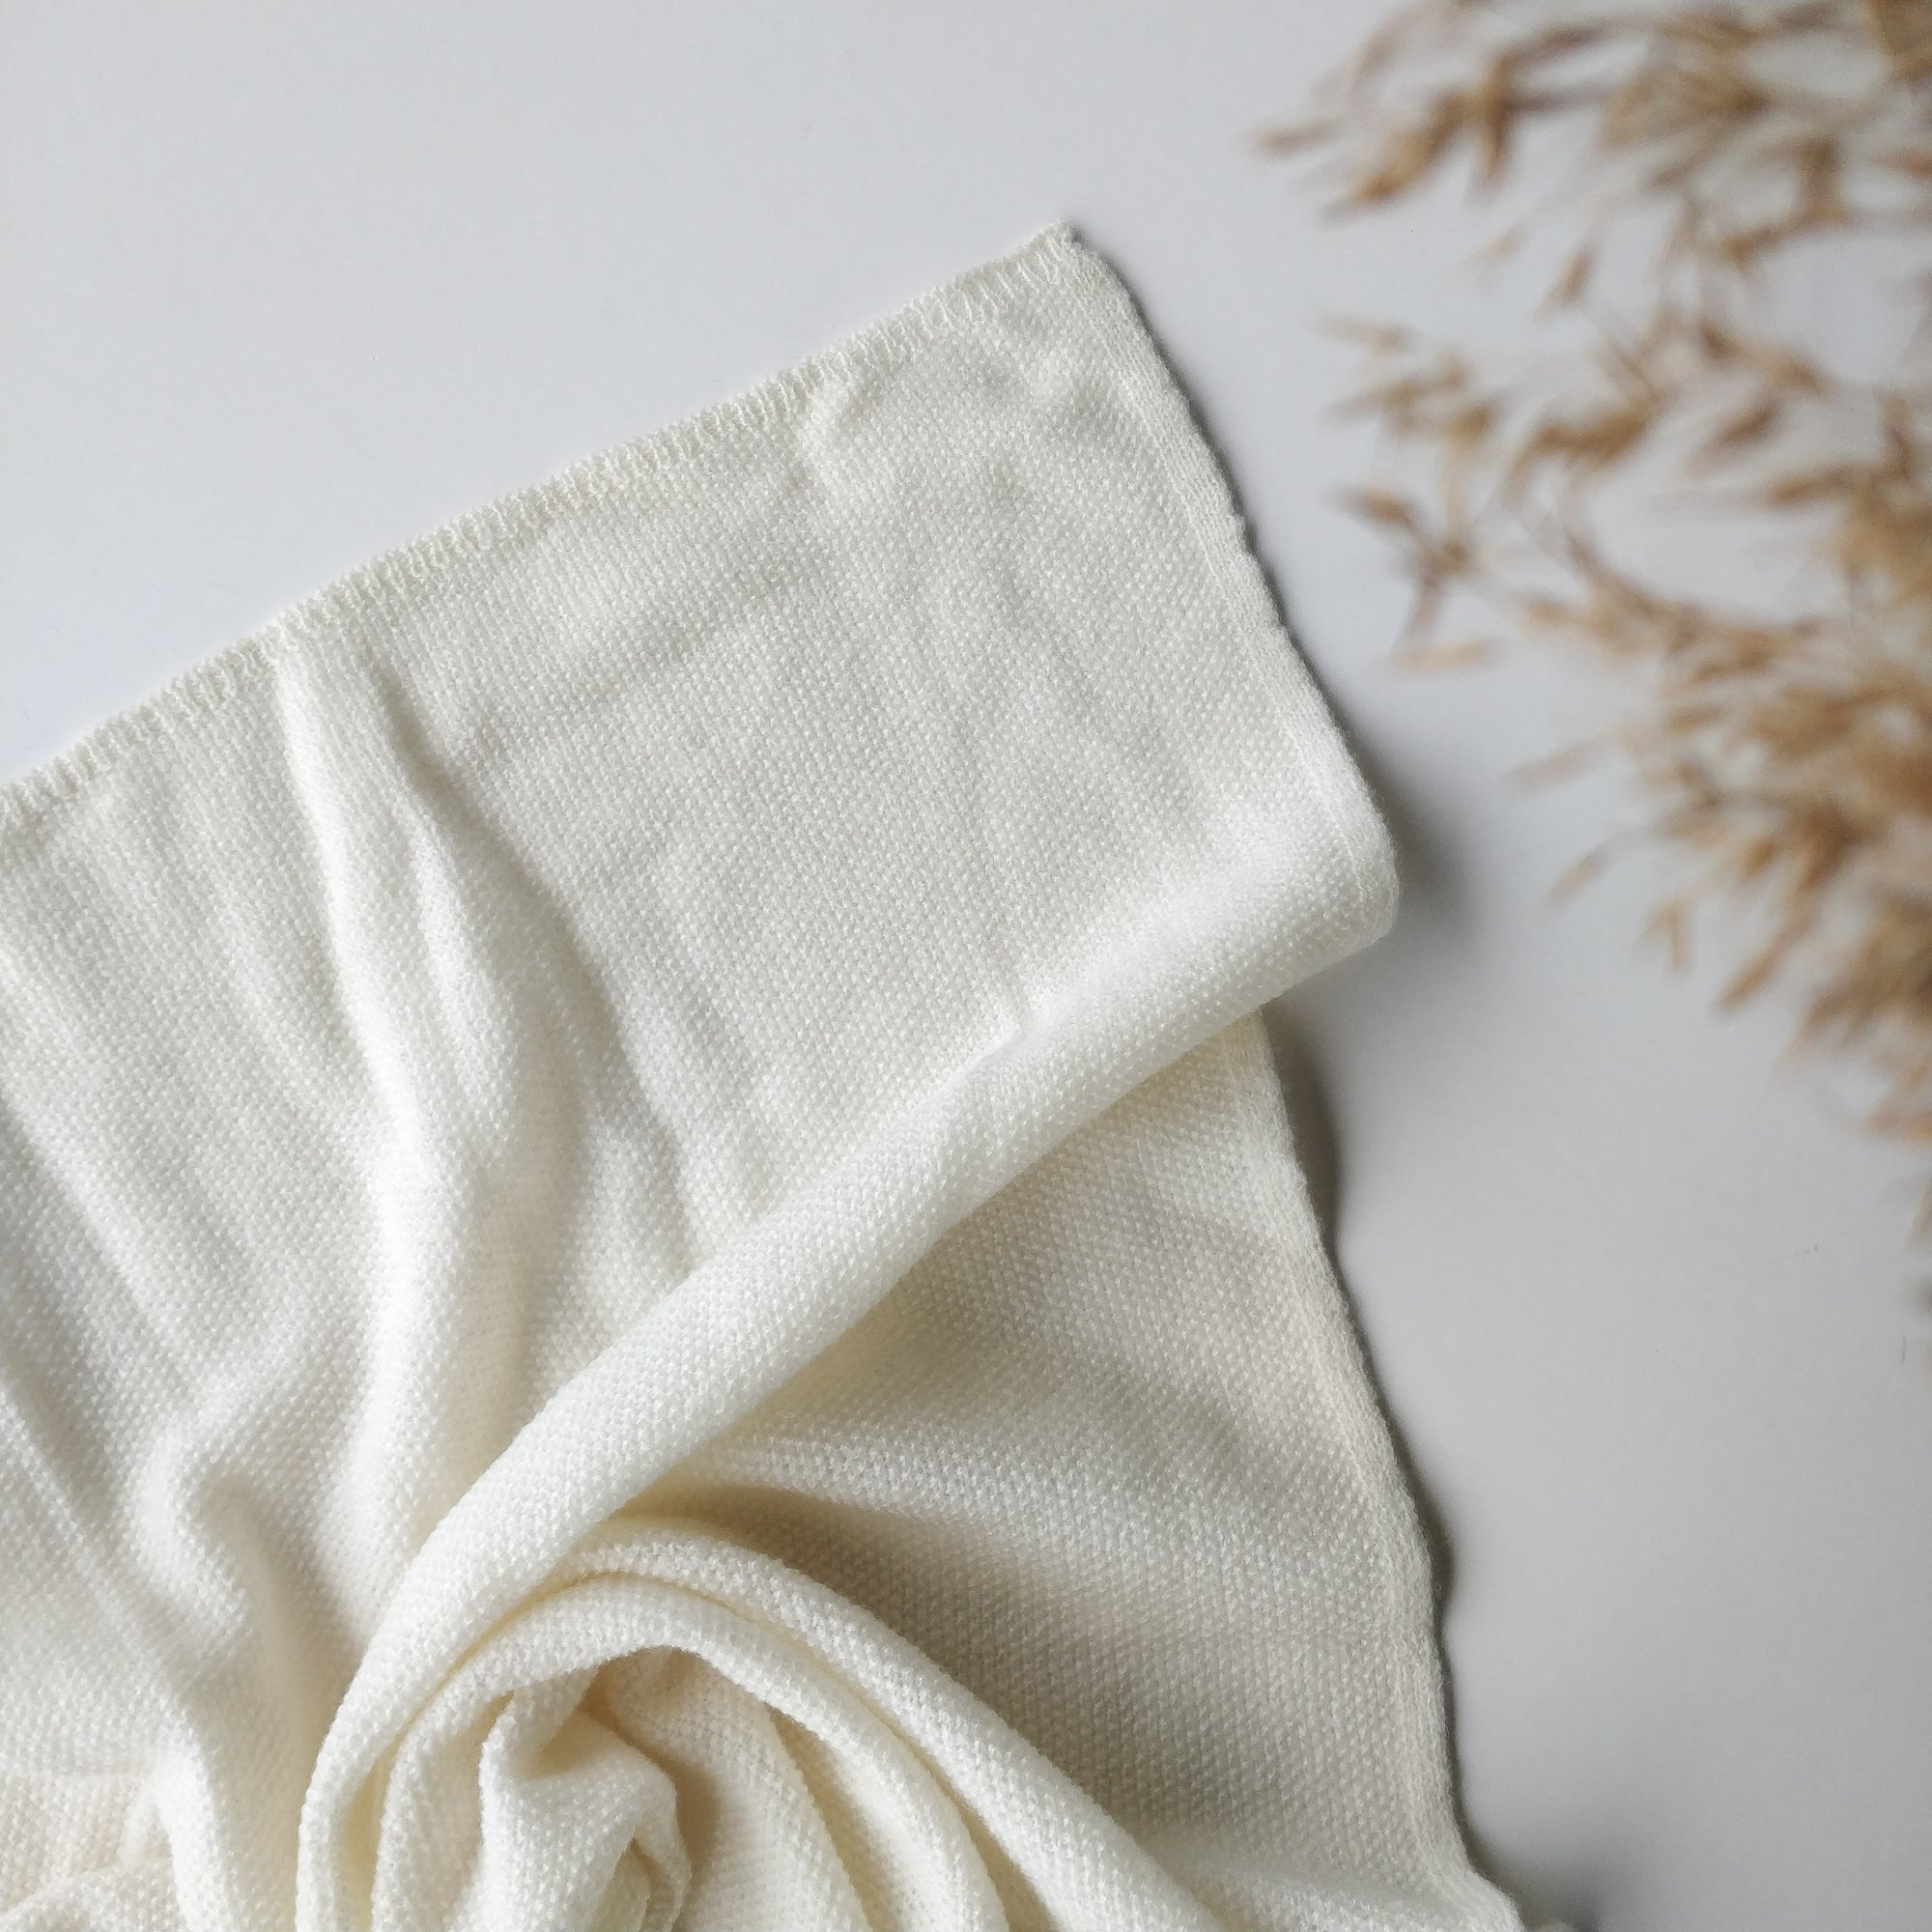 Ilon Wool Blanket, Cream White